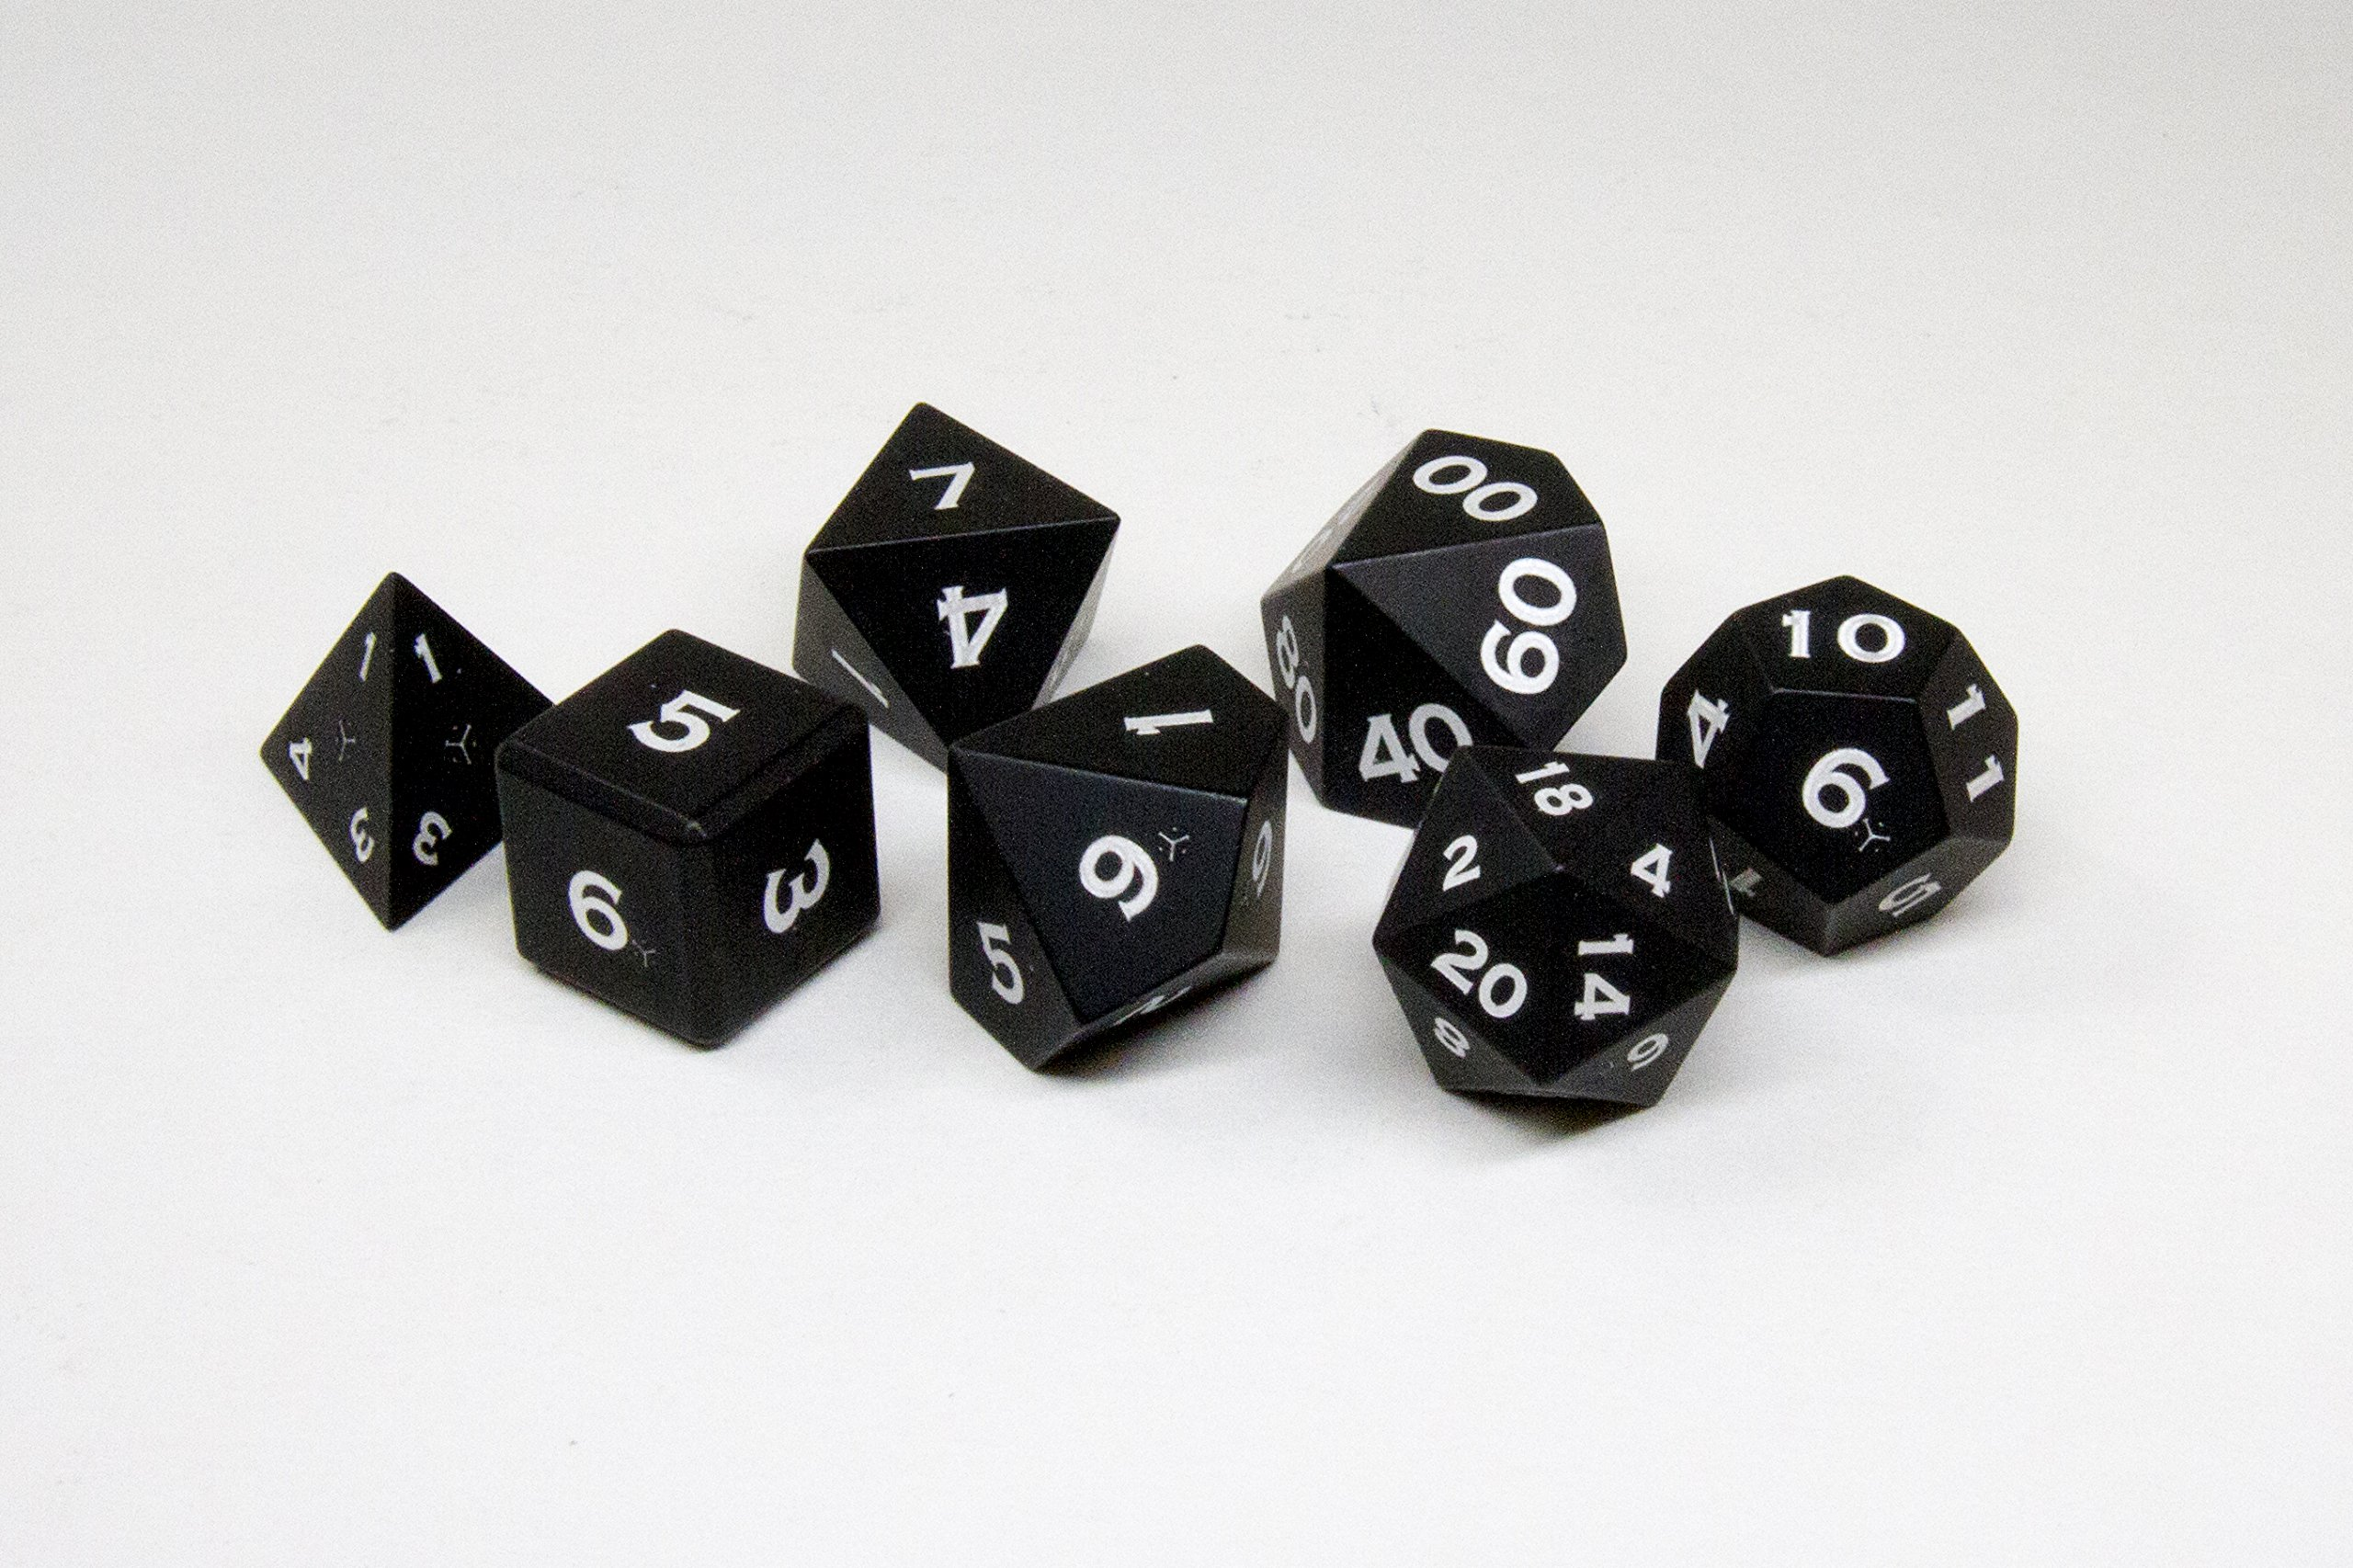 Gravity Dice 7 Metal Polyhedral Dice Set - Anodized Aluminum - World's Most Precise Gaming Dice (Black)